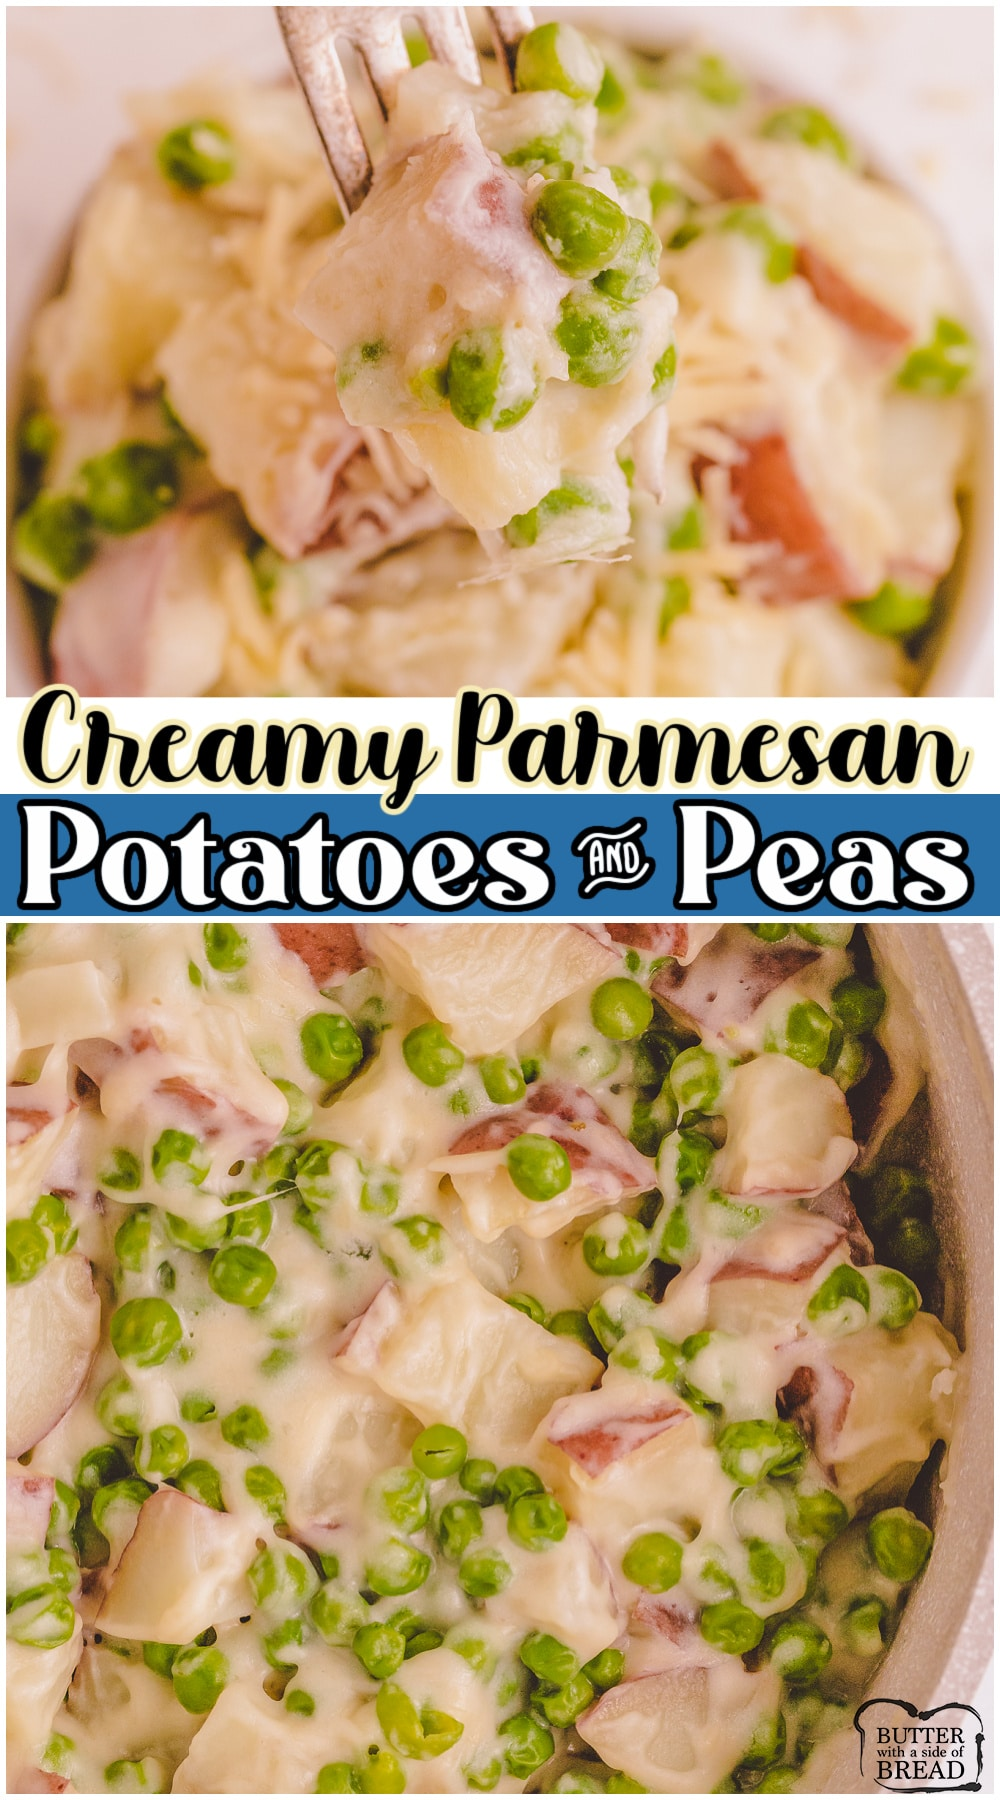 Creamy parmesan potatoes and peas is a simple and delicious side dish that's perfect for any occasion. Old fashioned creamed peas and potatoes recipe made with frozen peas, red potatoes, butter & cheese compliments any main dish perfectly!